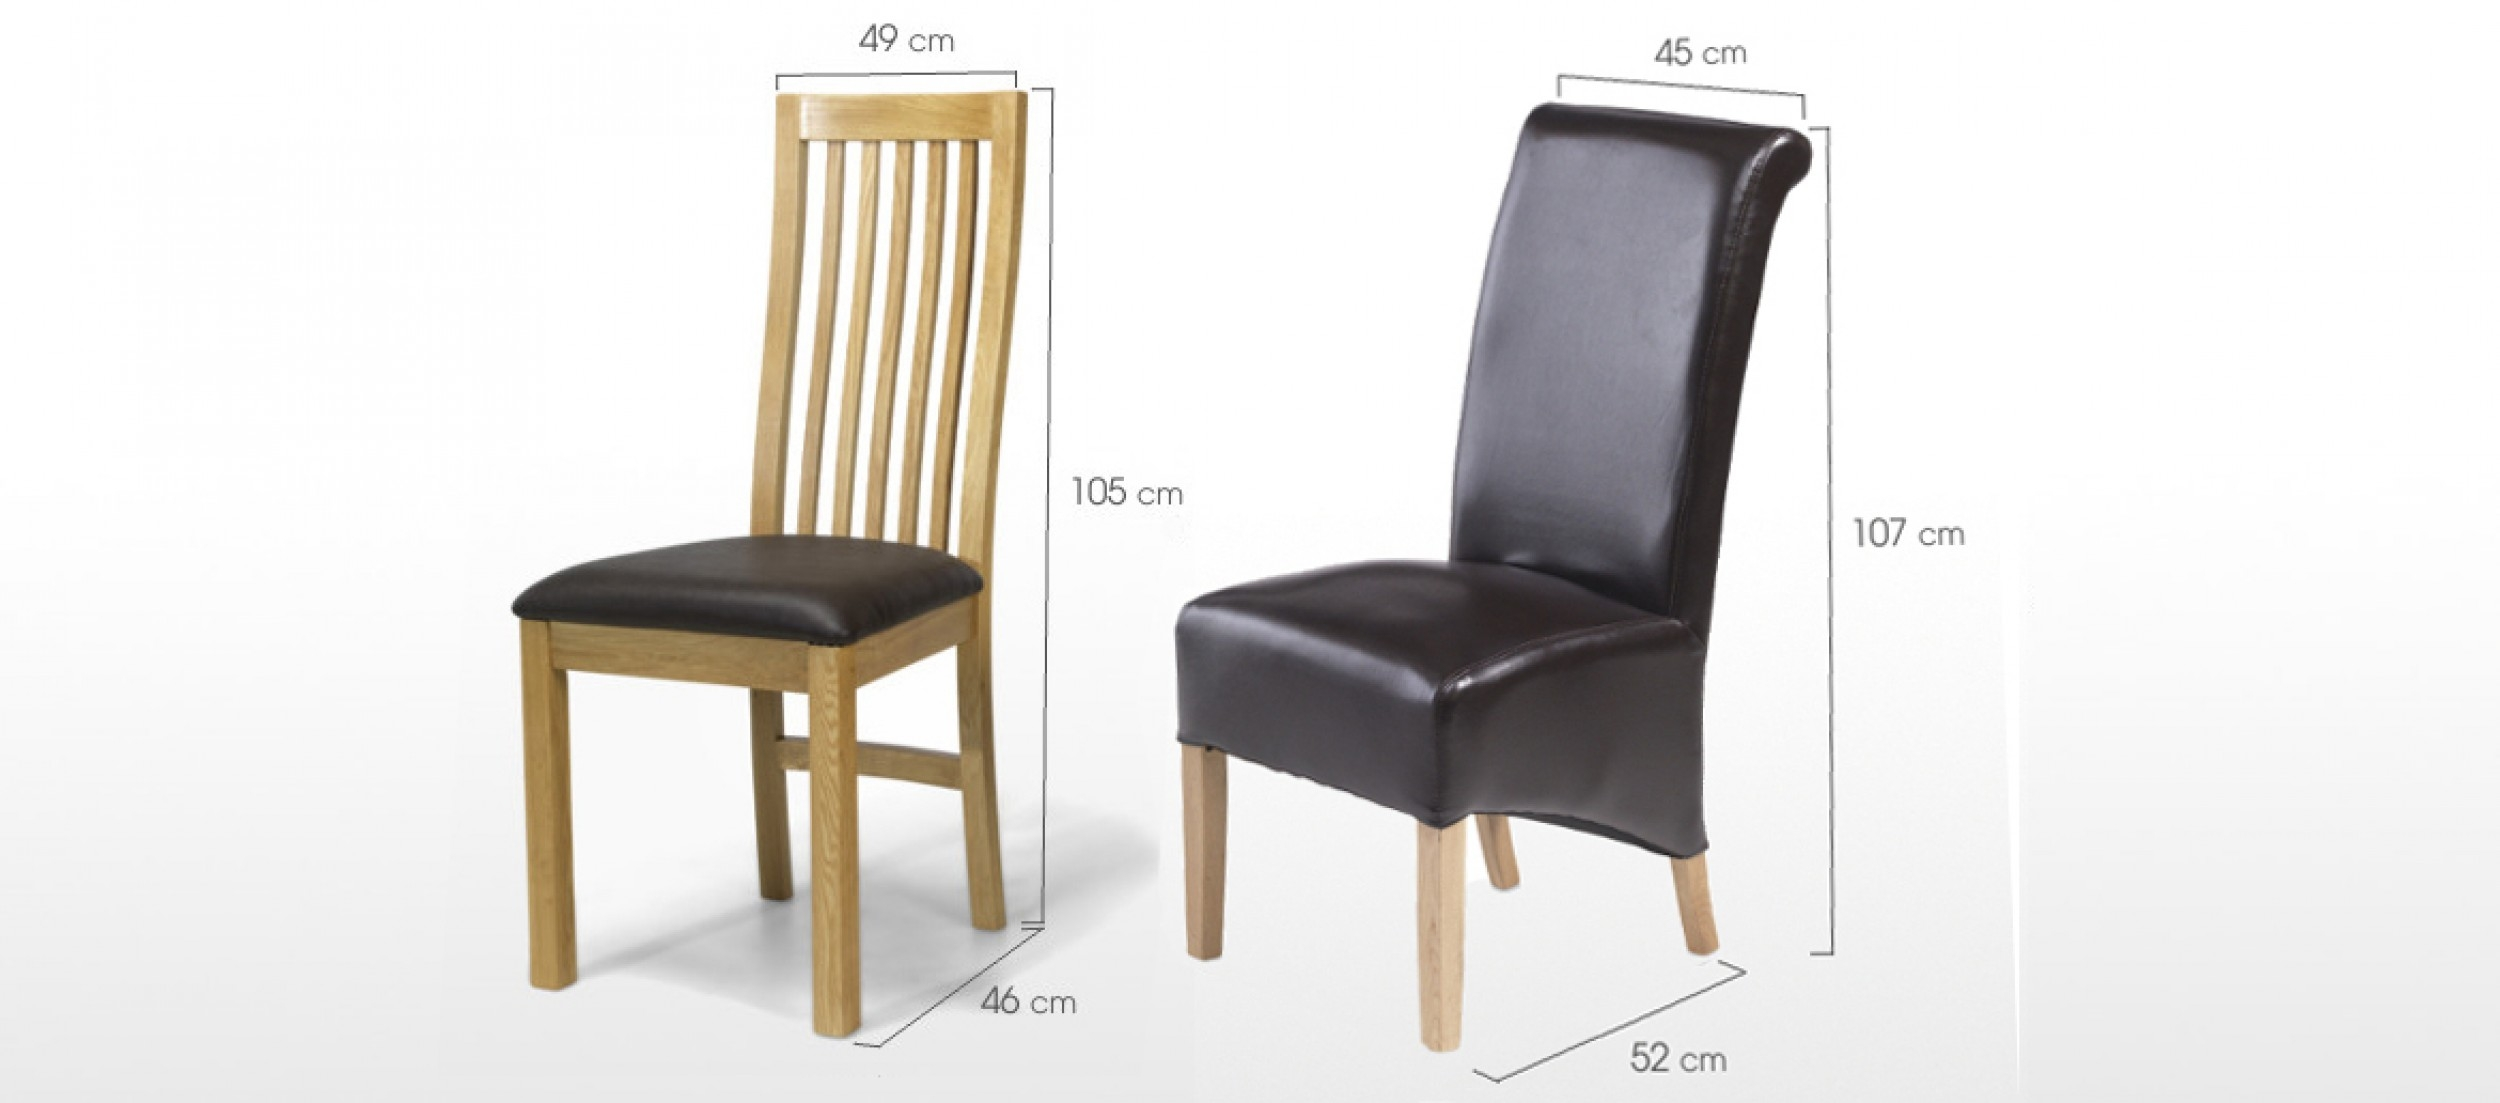 Dining Chair Dimensions Standard Review Of 9 Ideas In 9 – layjao